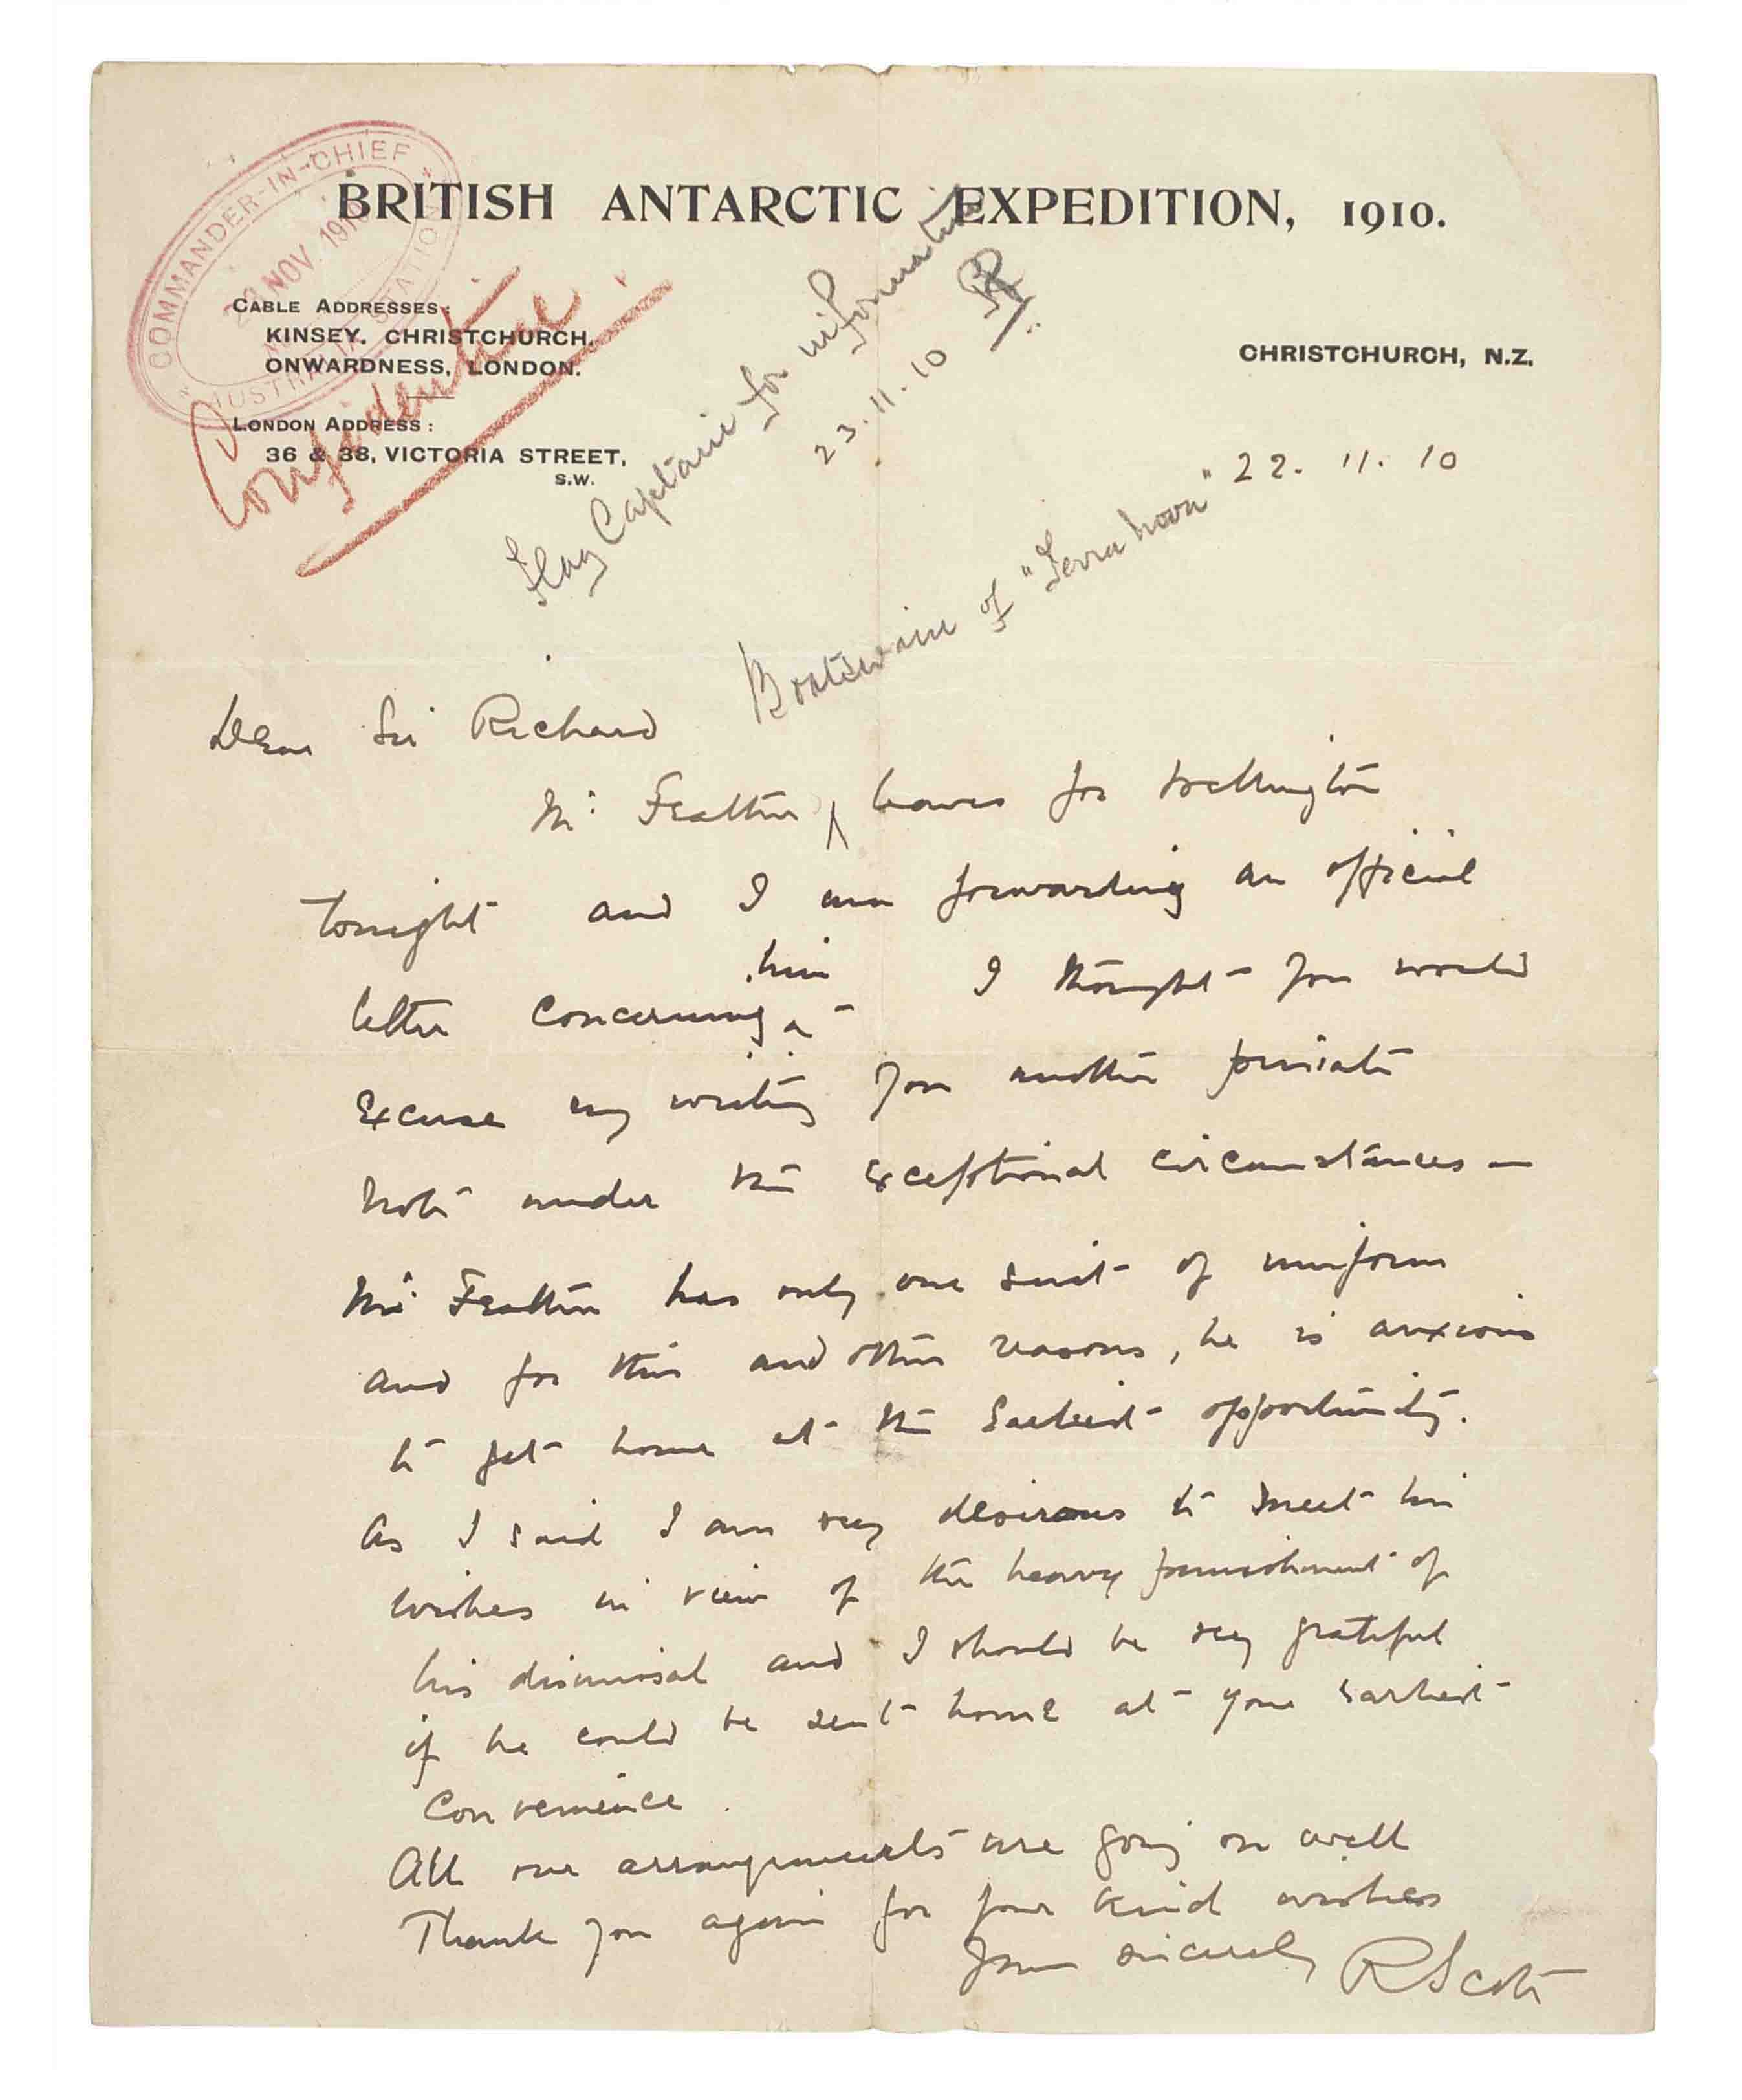 SCOTT, Robert Falcon (1868-1912). Autograph letter signed ('R. Scott') to Sir Richard Poore, 4th Bart (commander-in-chief, Australian Station), Christchurch, New Zealand, 22 November 1910, one page, 4to, printed heading of British Antarctic Exepdition, stamp and two annotations by recipient.